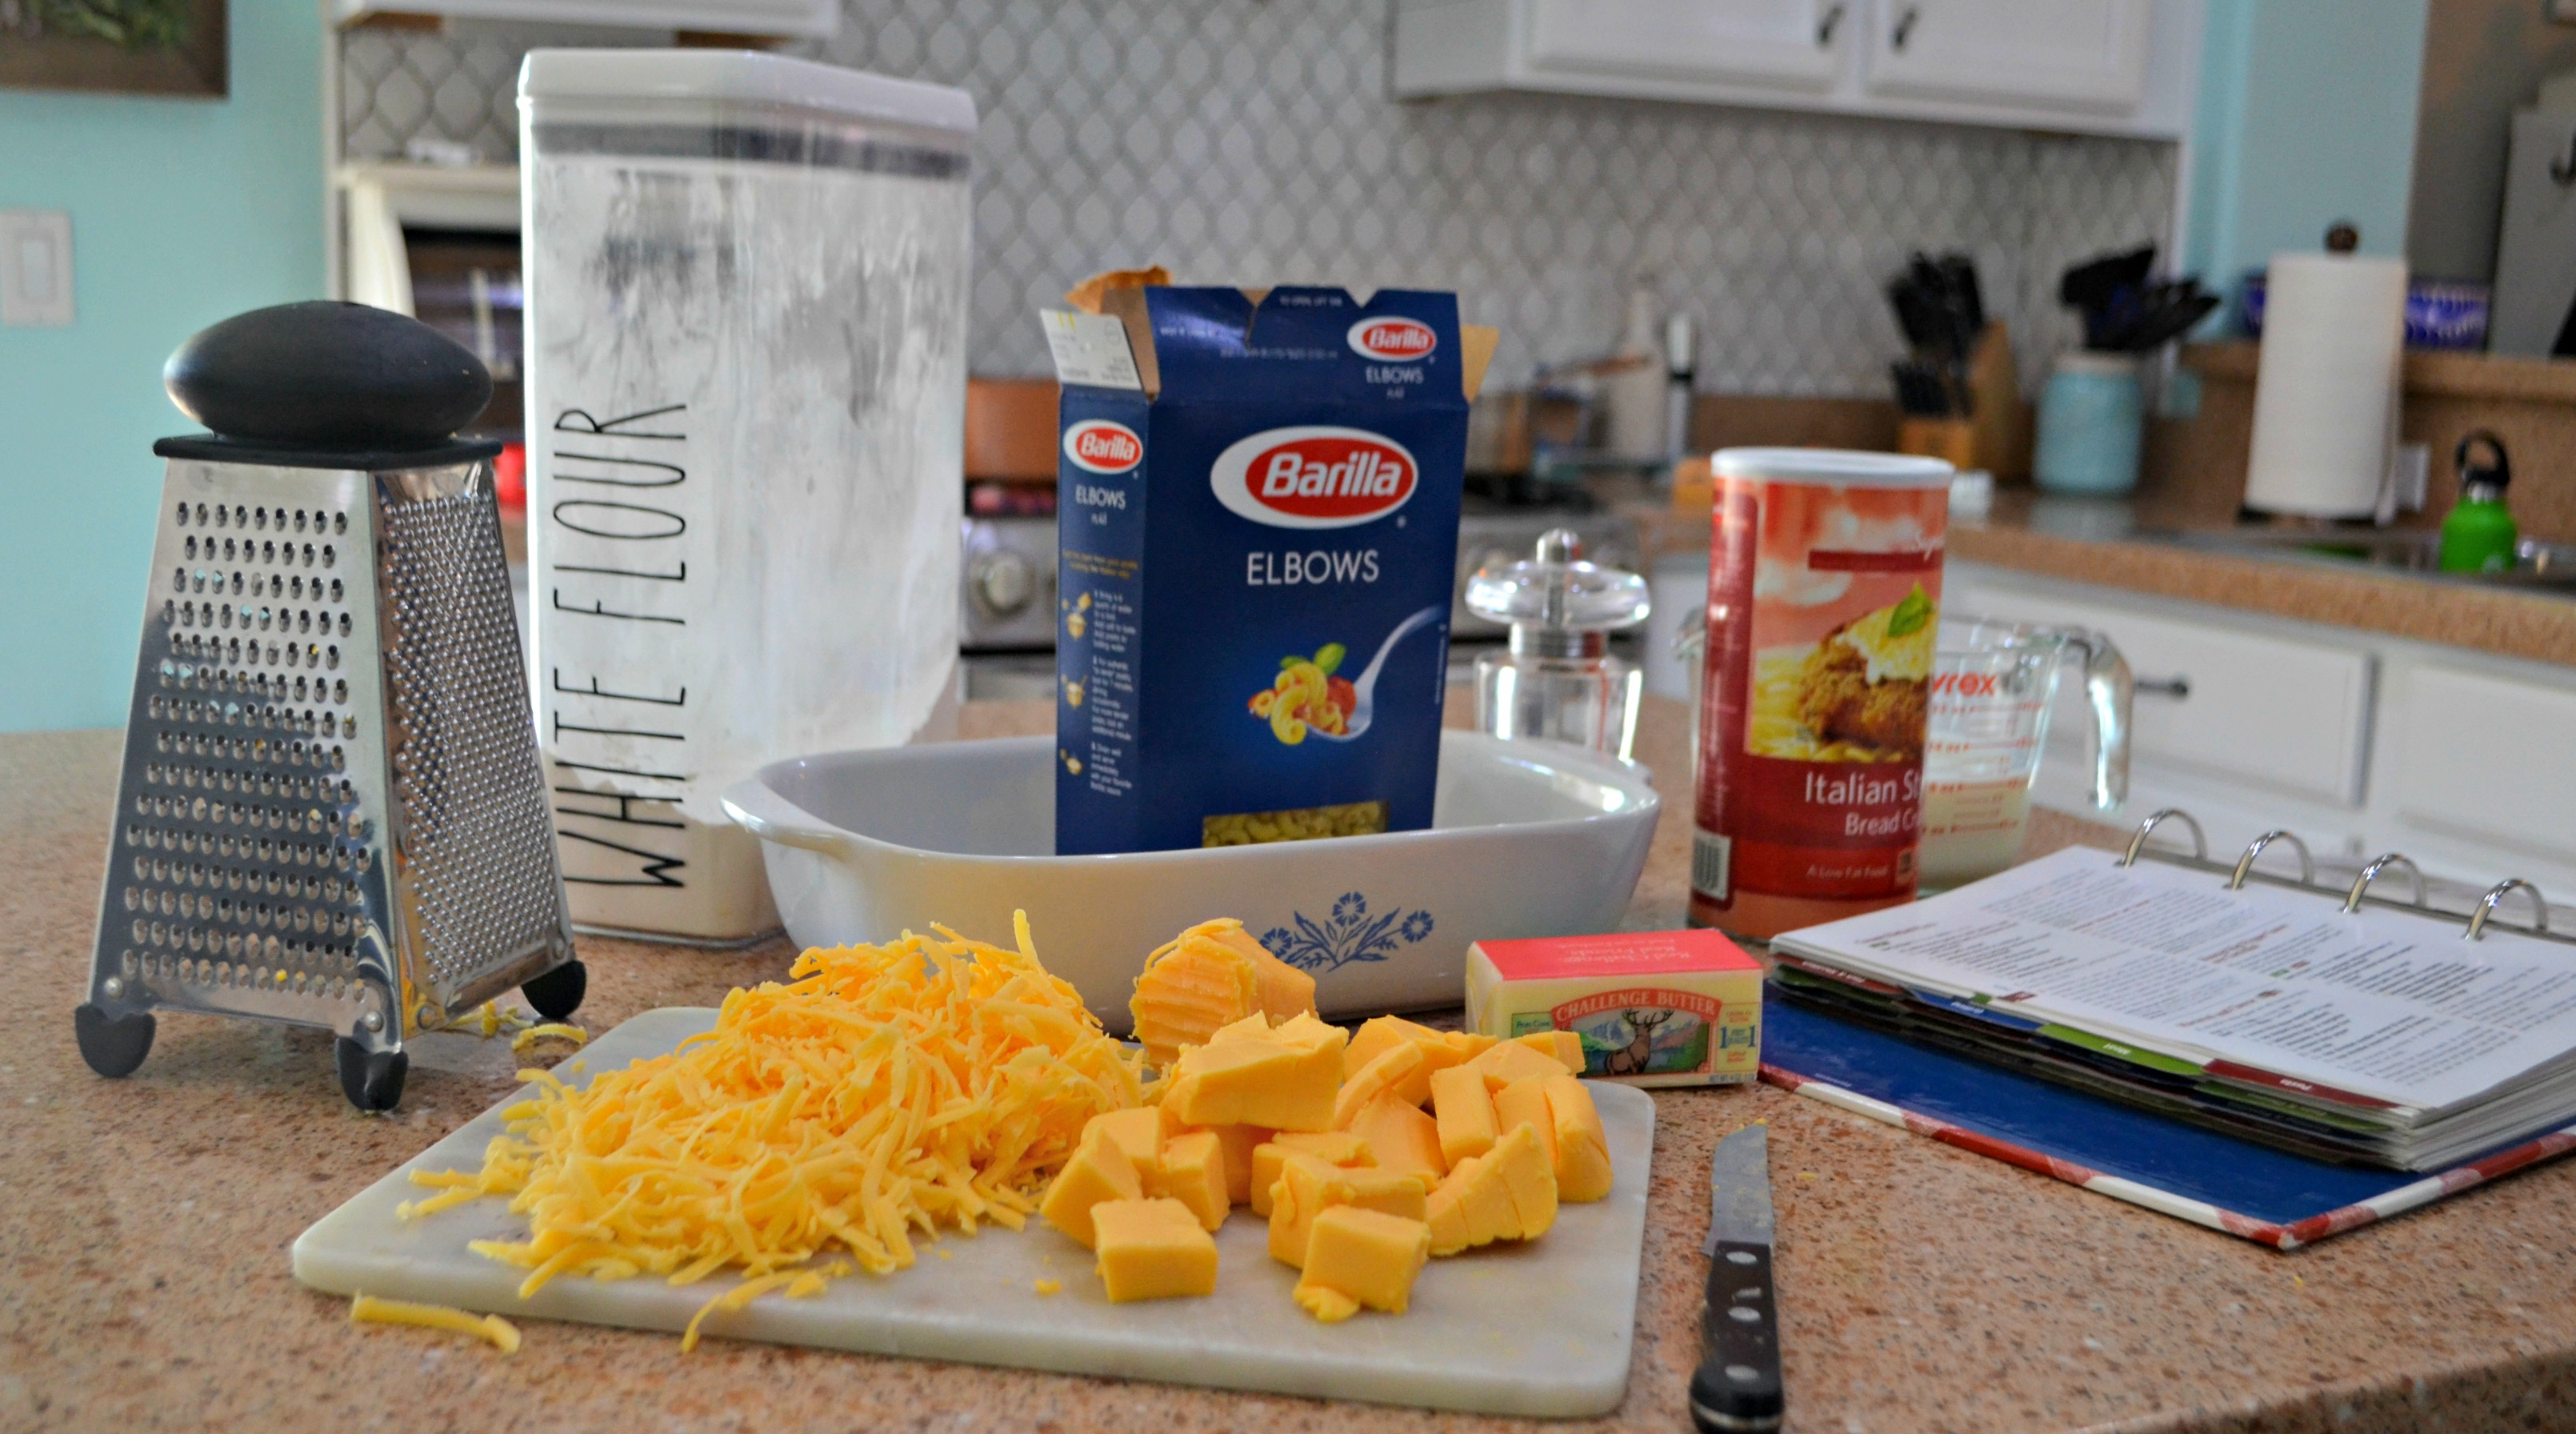 Classic Mac and Cheese just like my mom made! – Ingredients on the counter